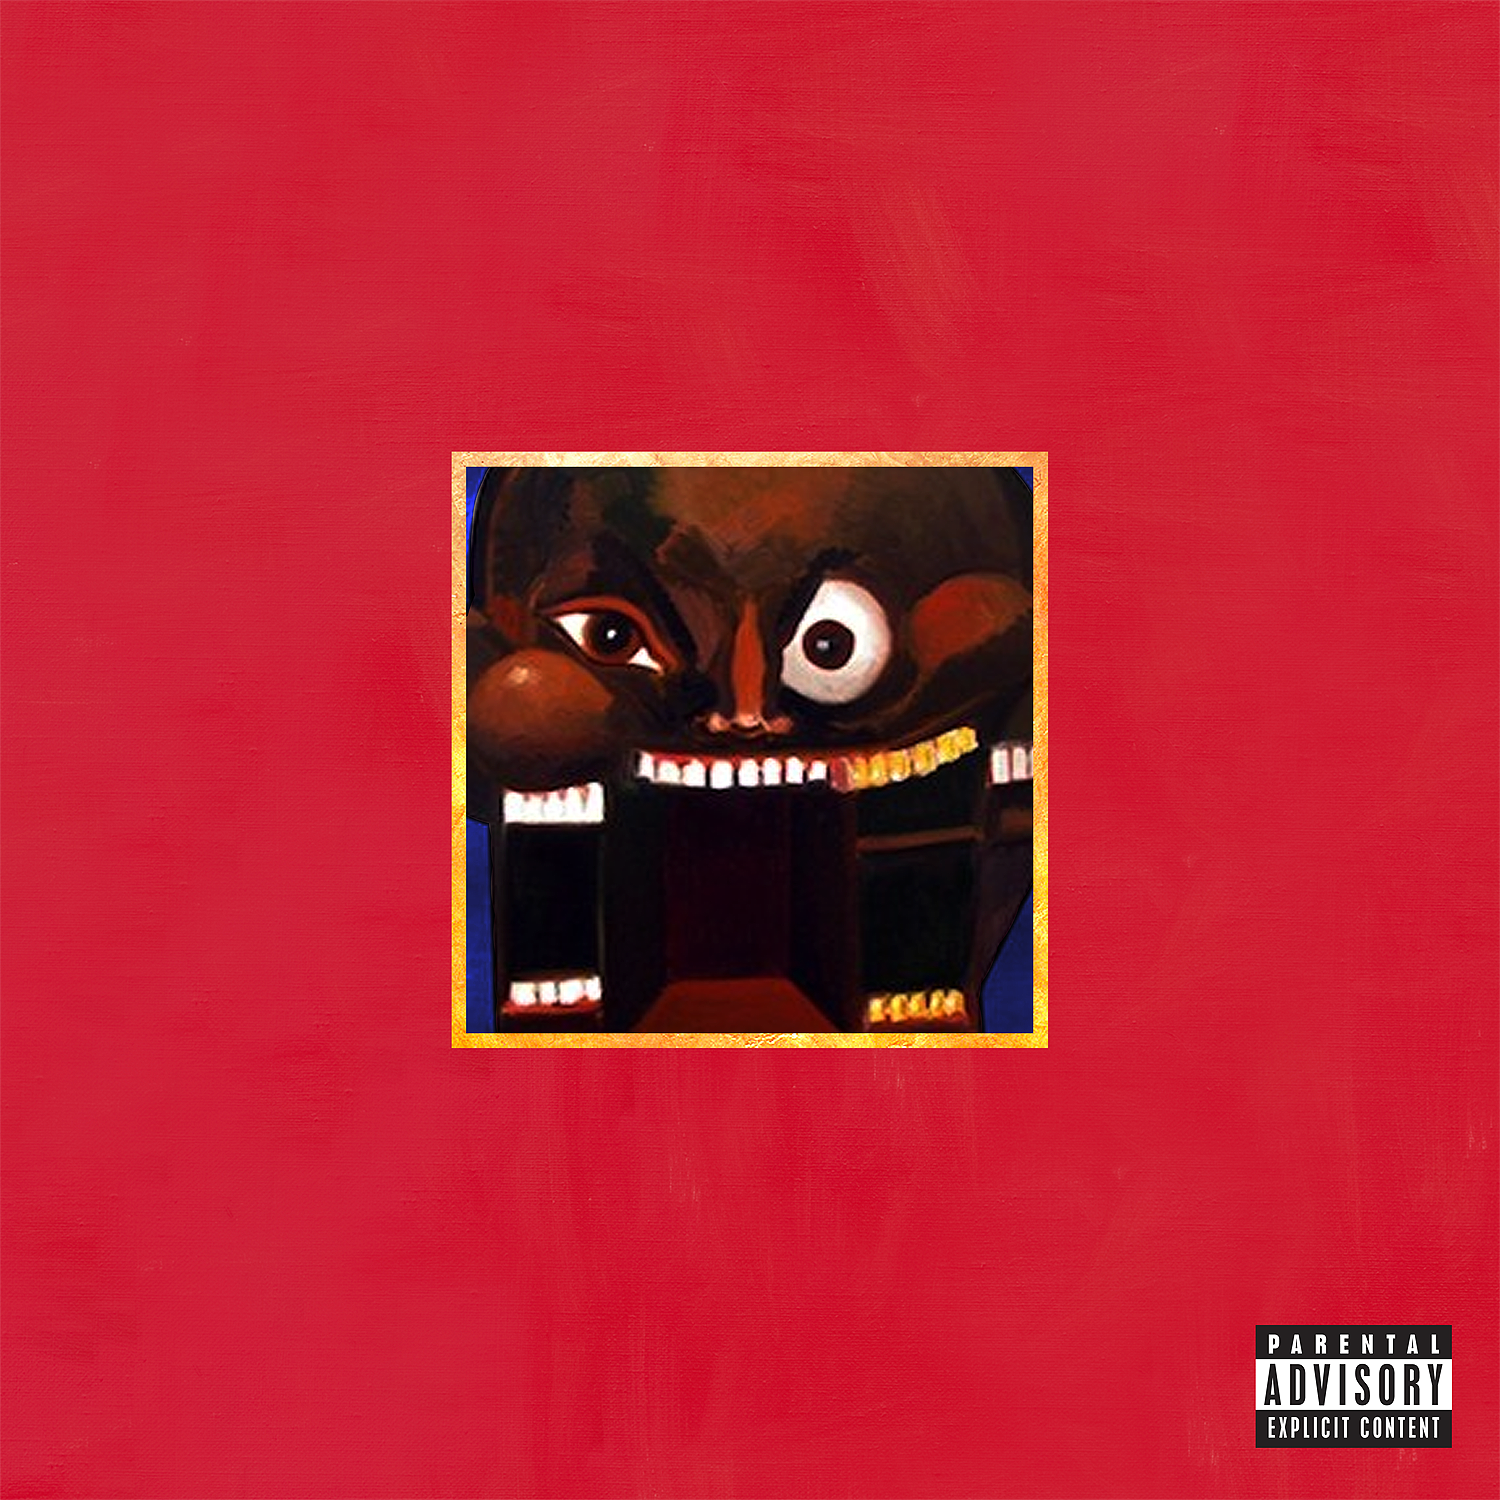 kanye west mbdtf alternate album covers